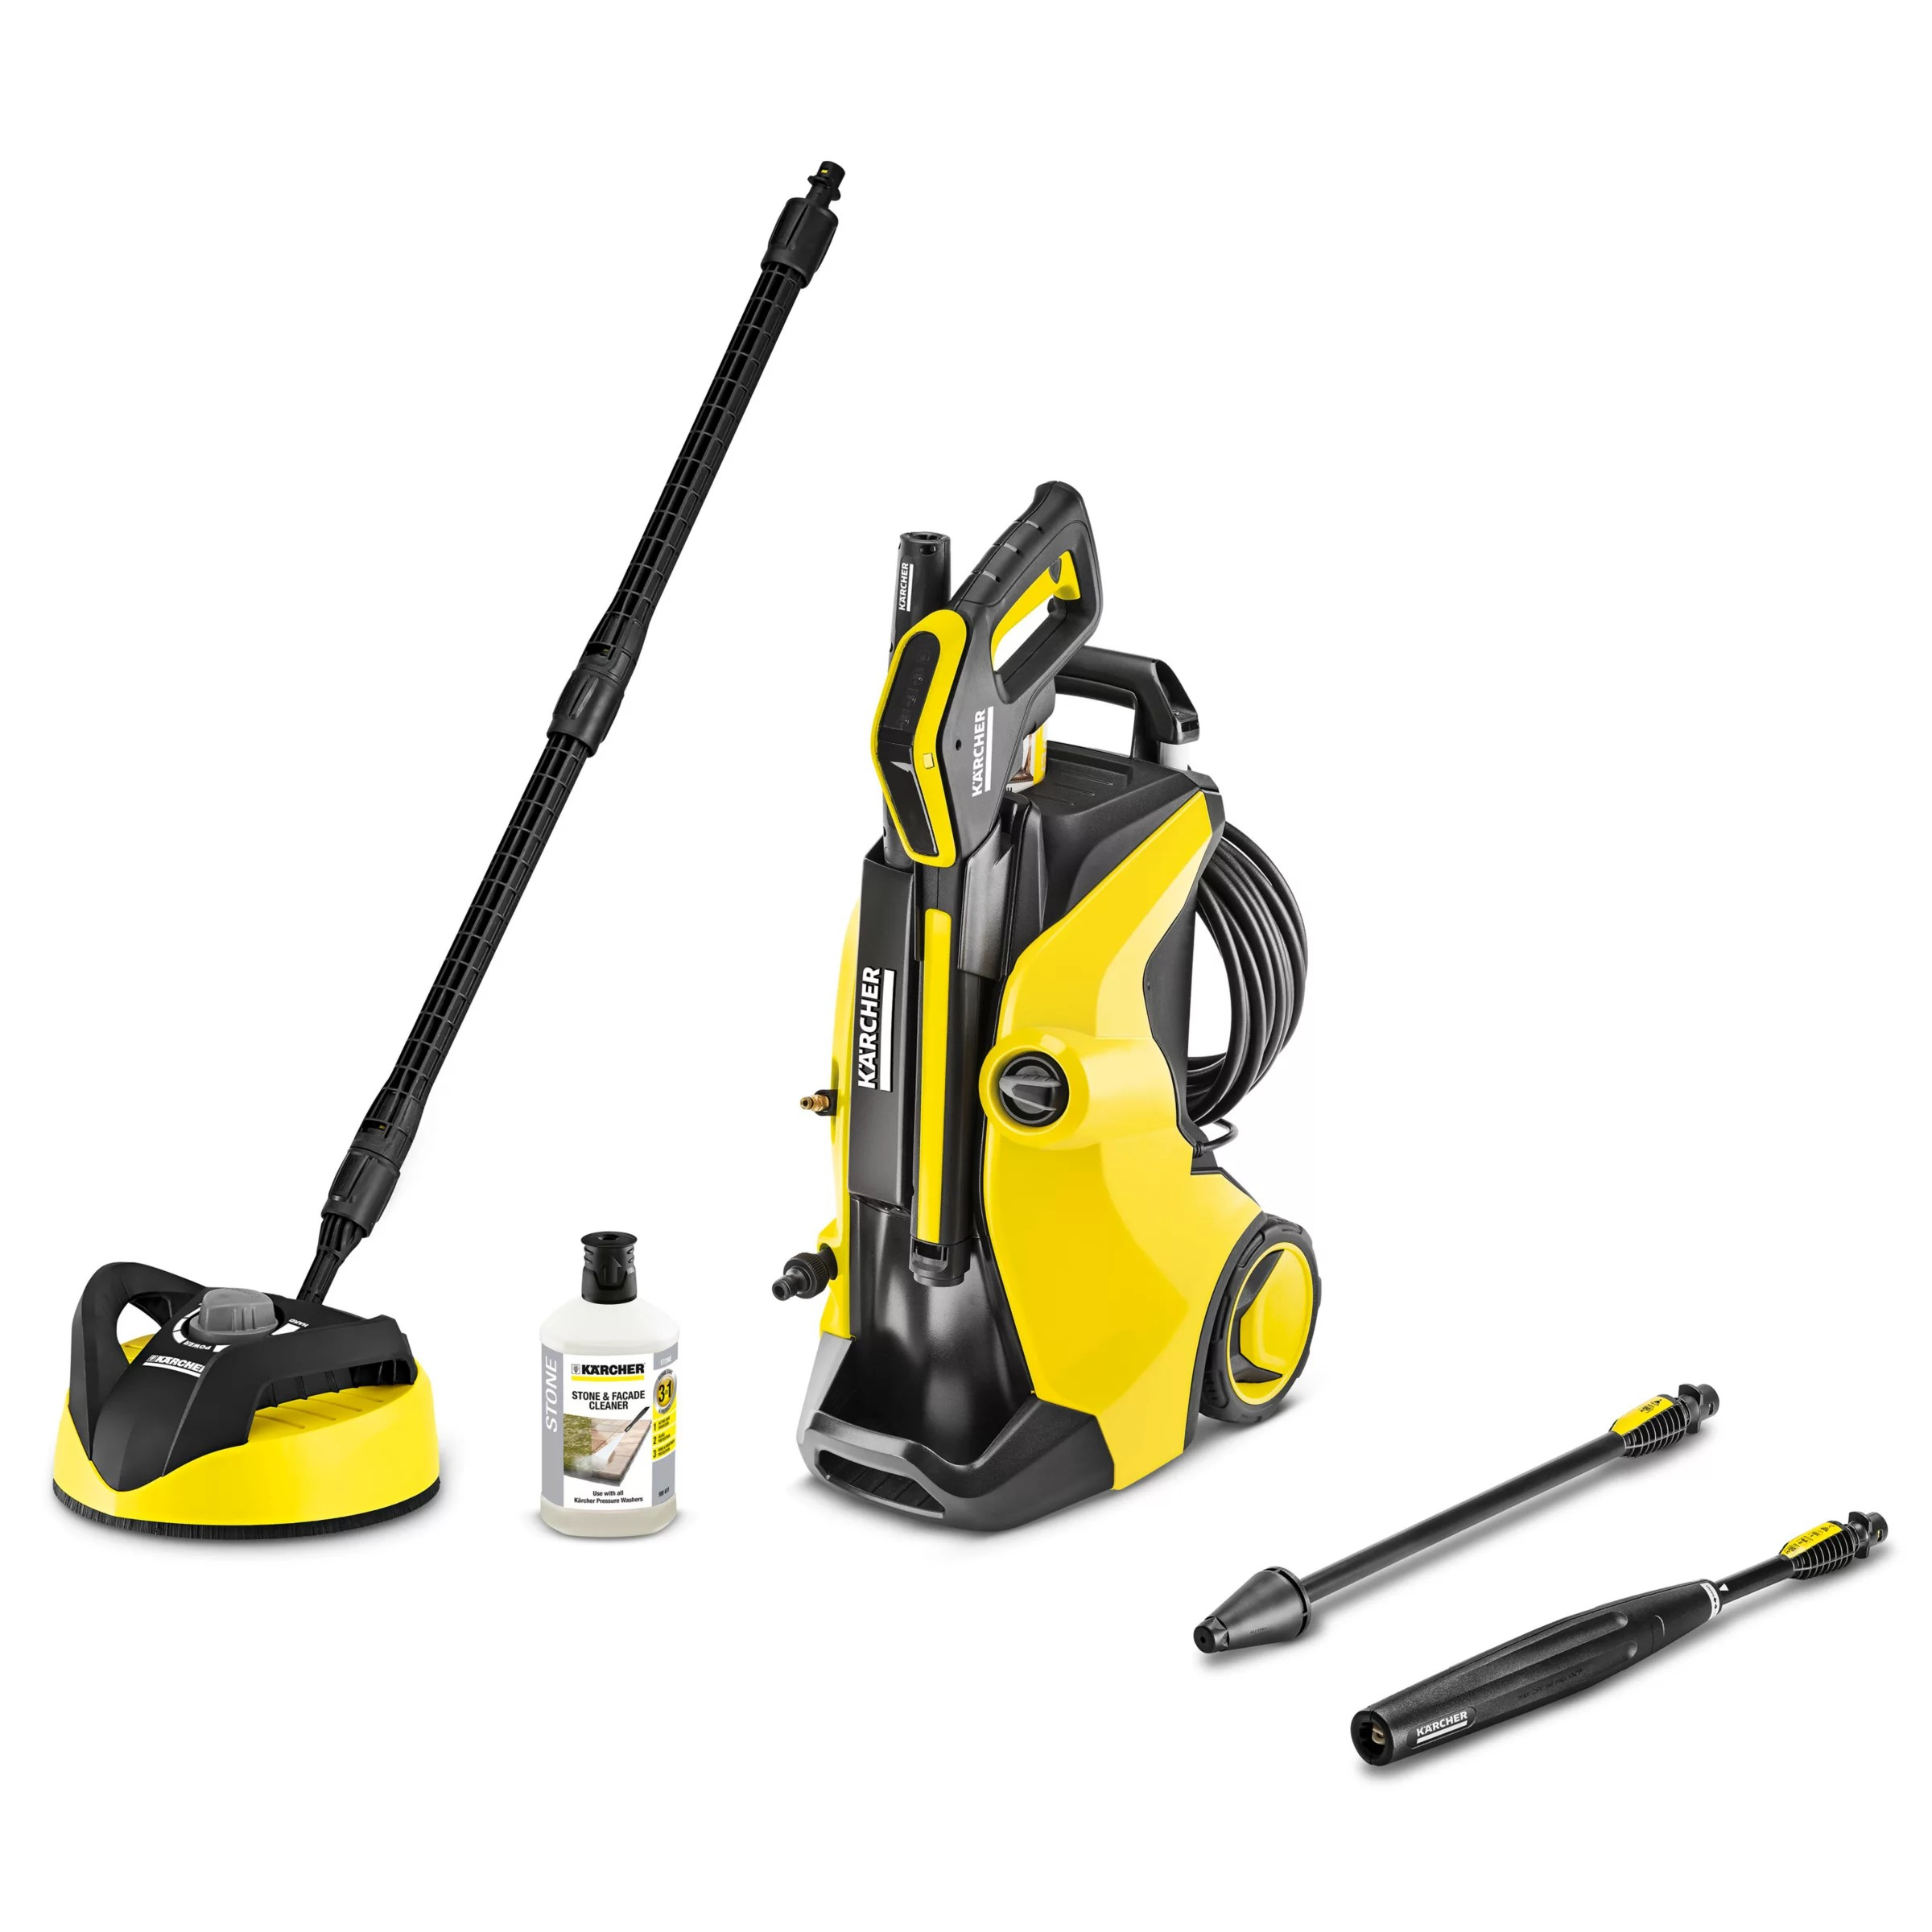 Karcher Reiniger Kärcher K5 Full Control Home Pressure Washer At John Lewis Partners